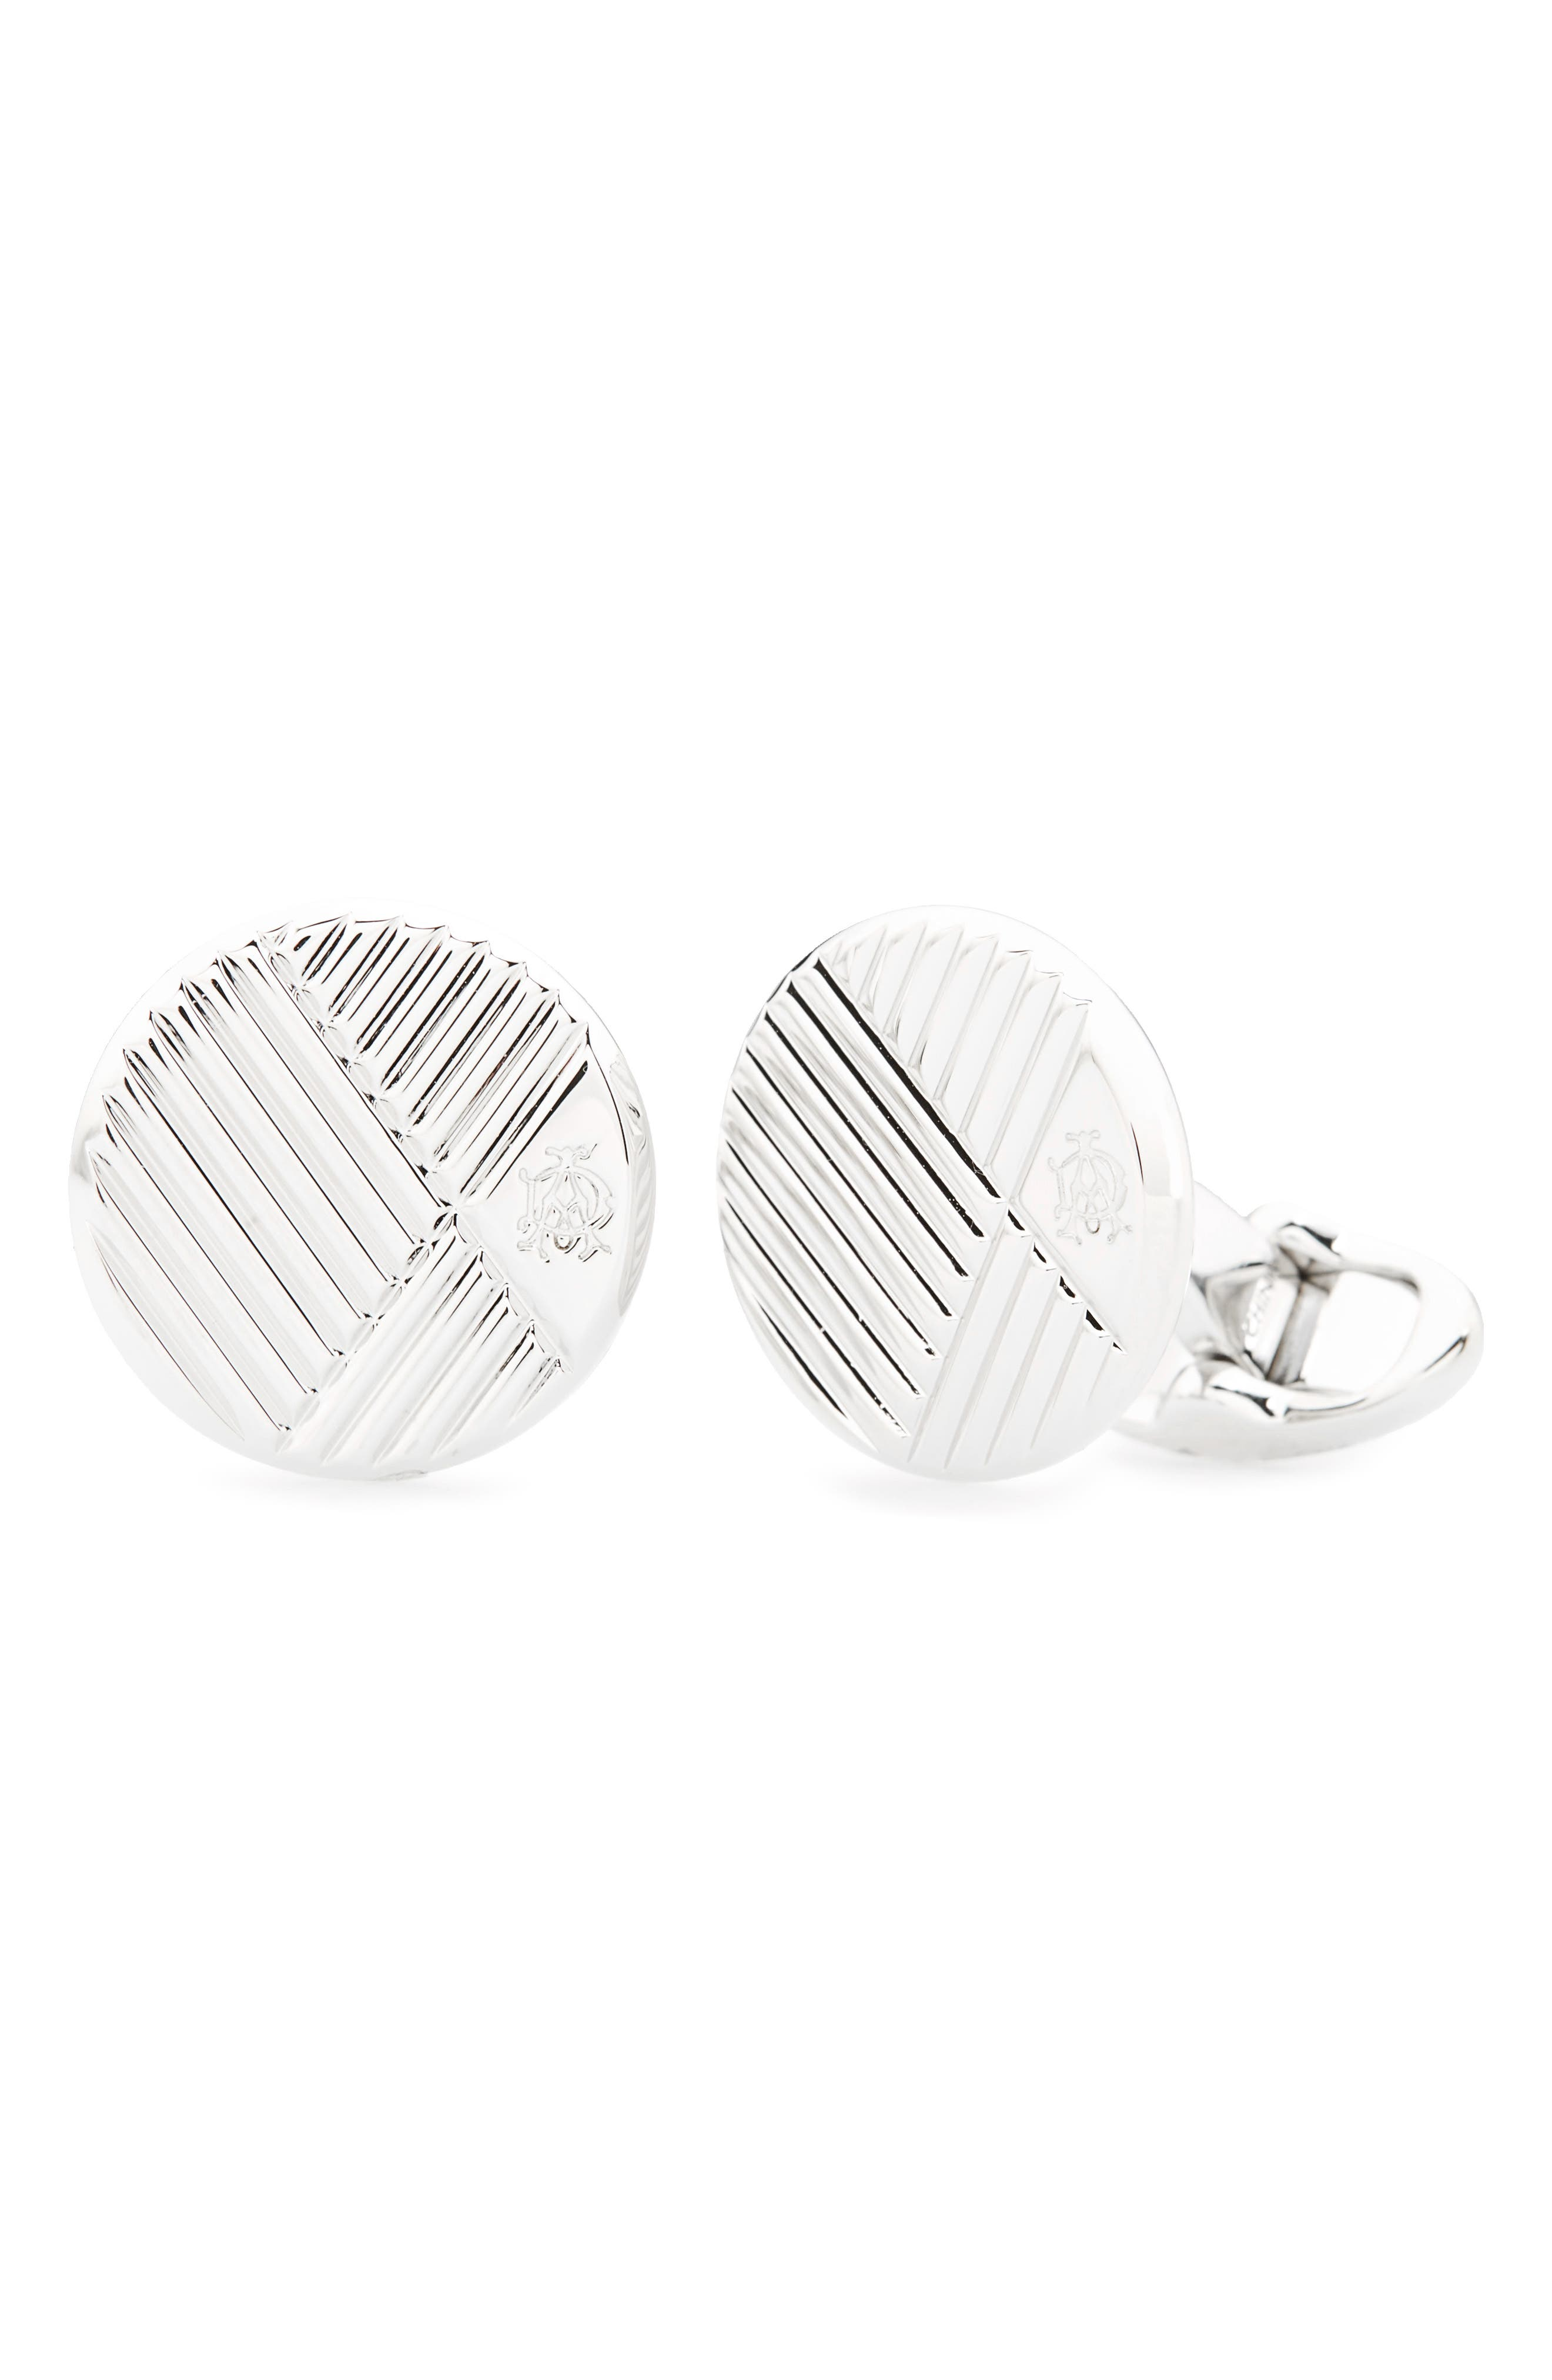 Round Diagonal Cuff Links,                             Main thumbnail 1, color,